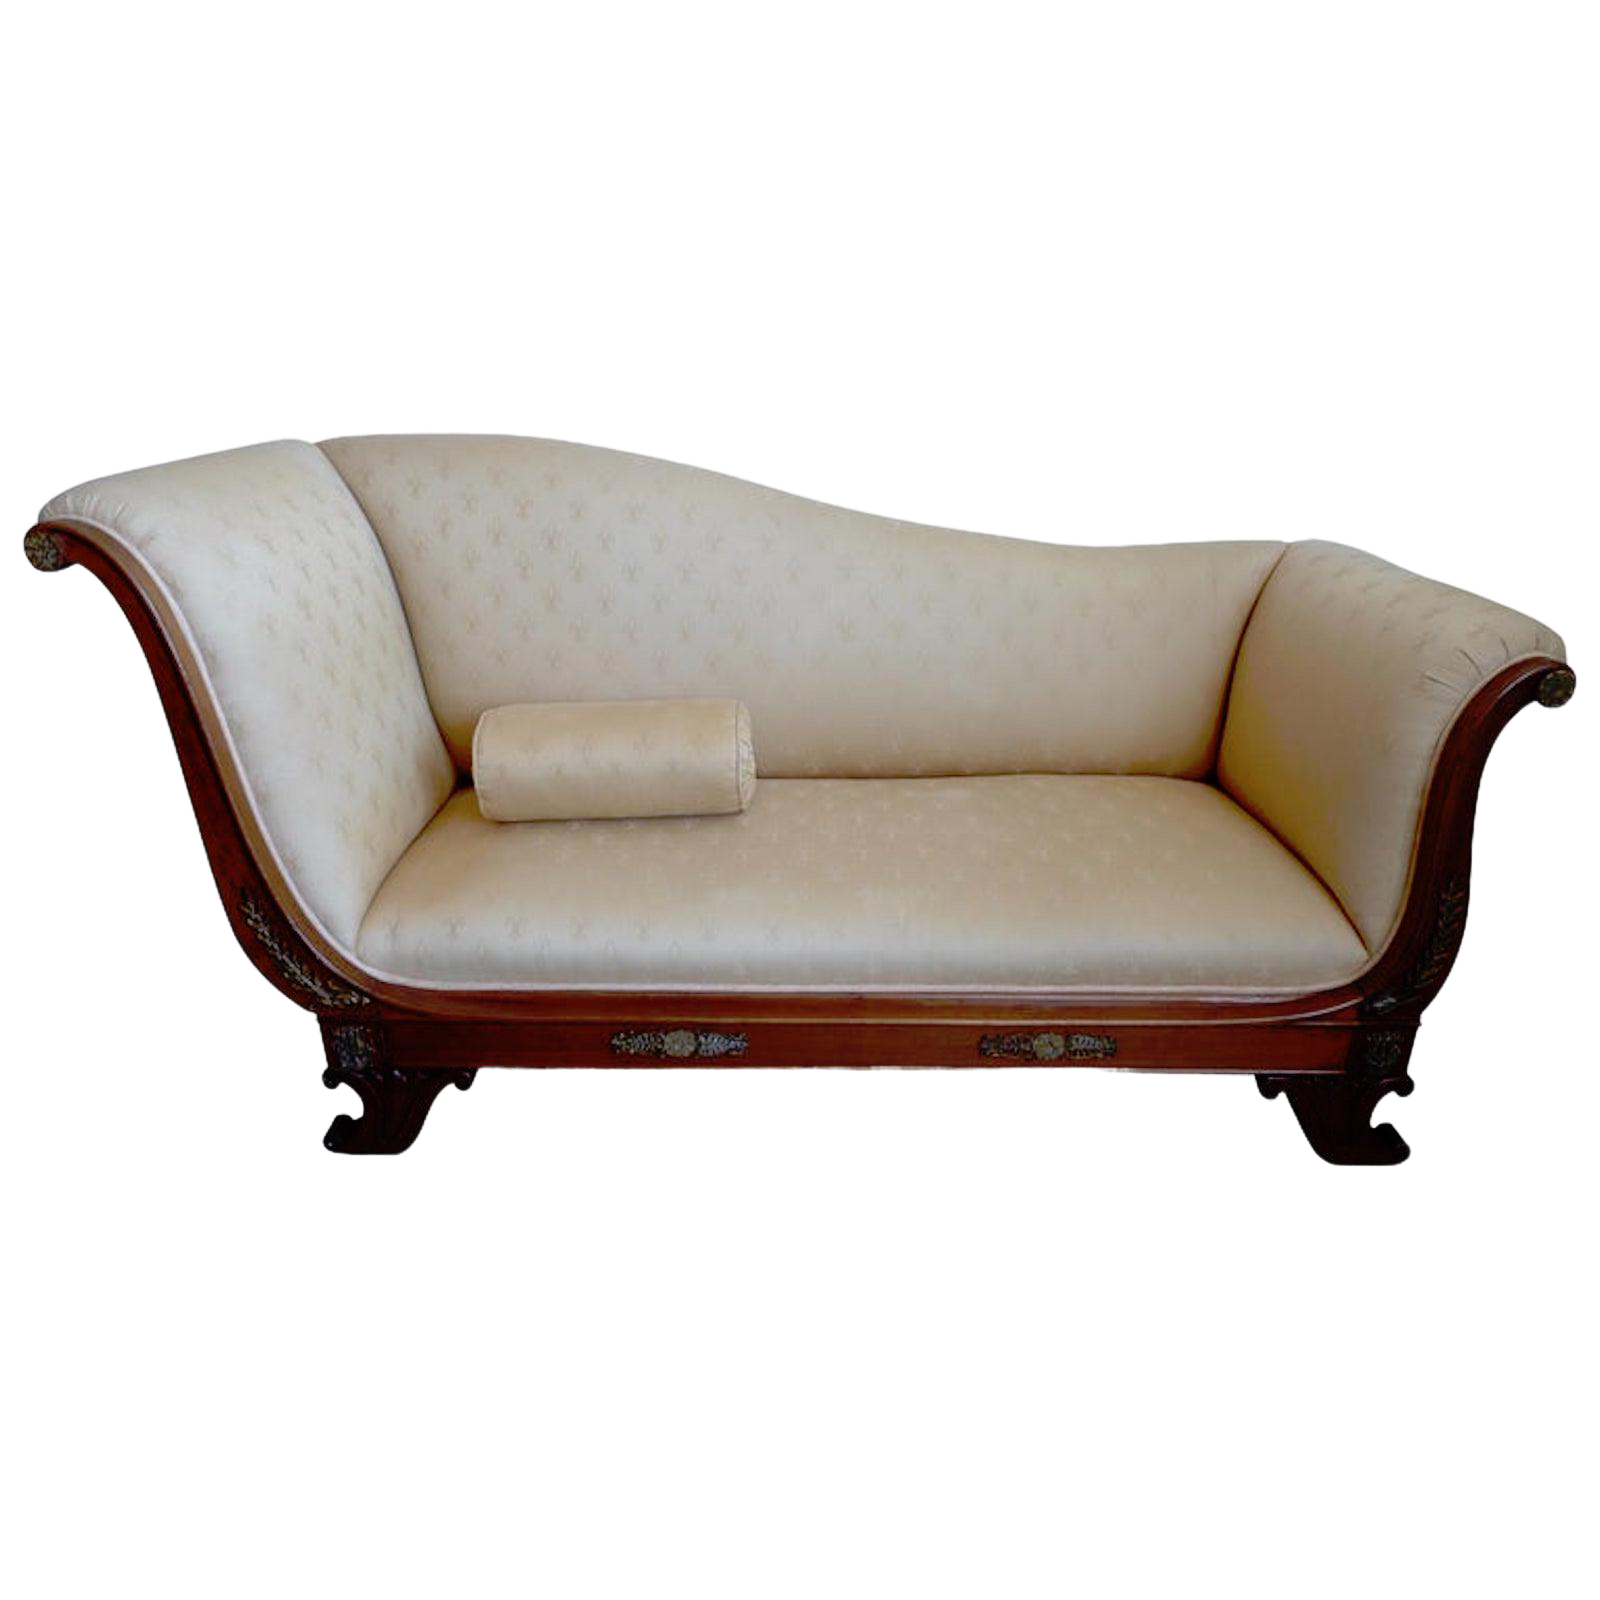 19th Century French Empire Walnut And Fabric Chaise Lounge Sofa Chairish